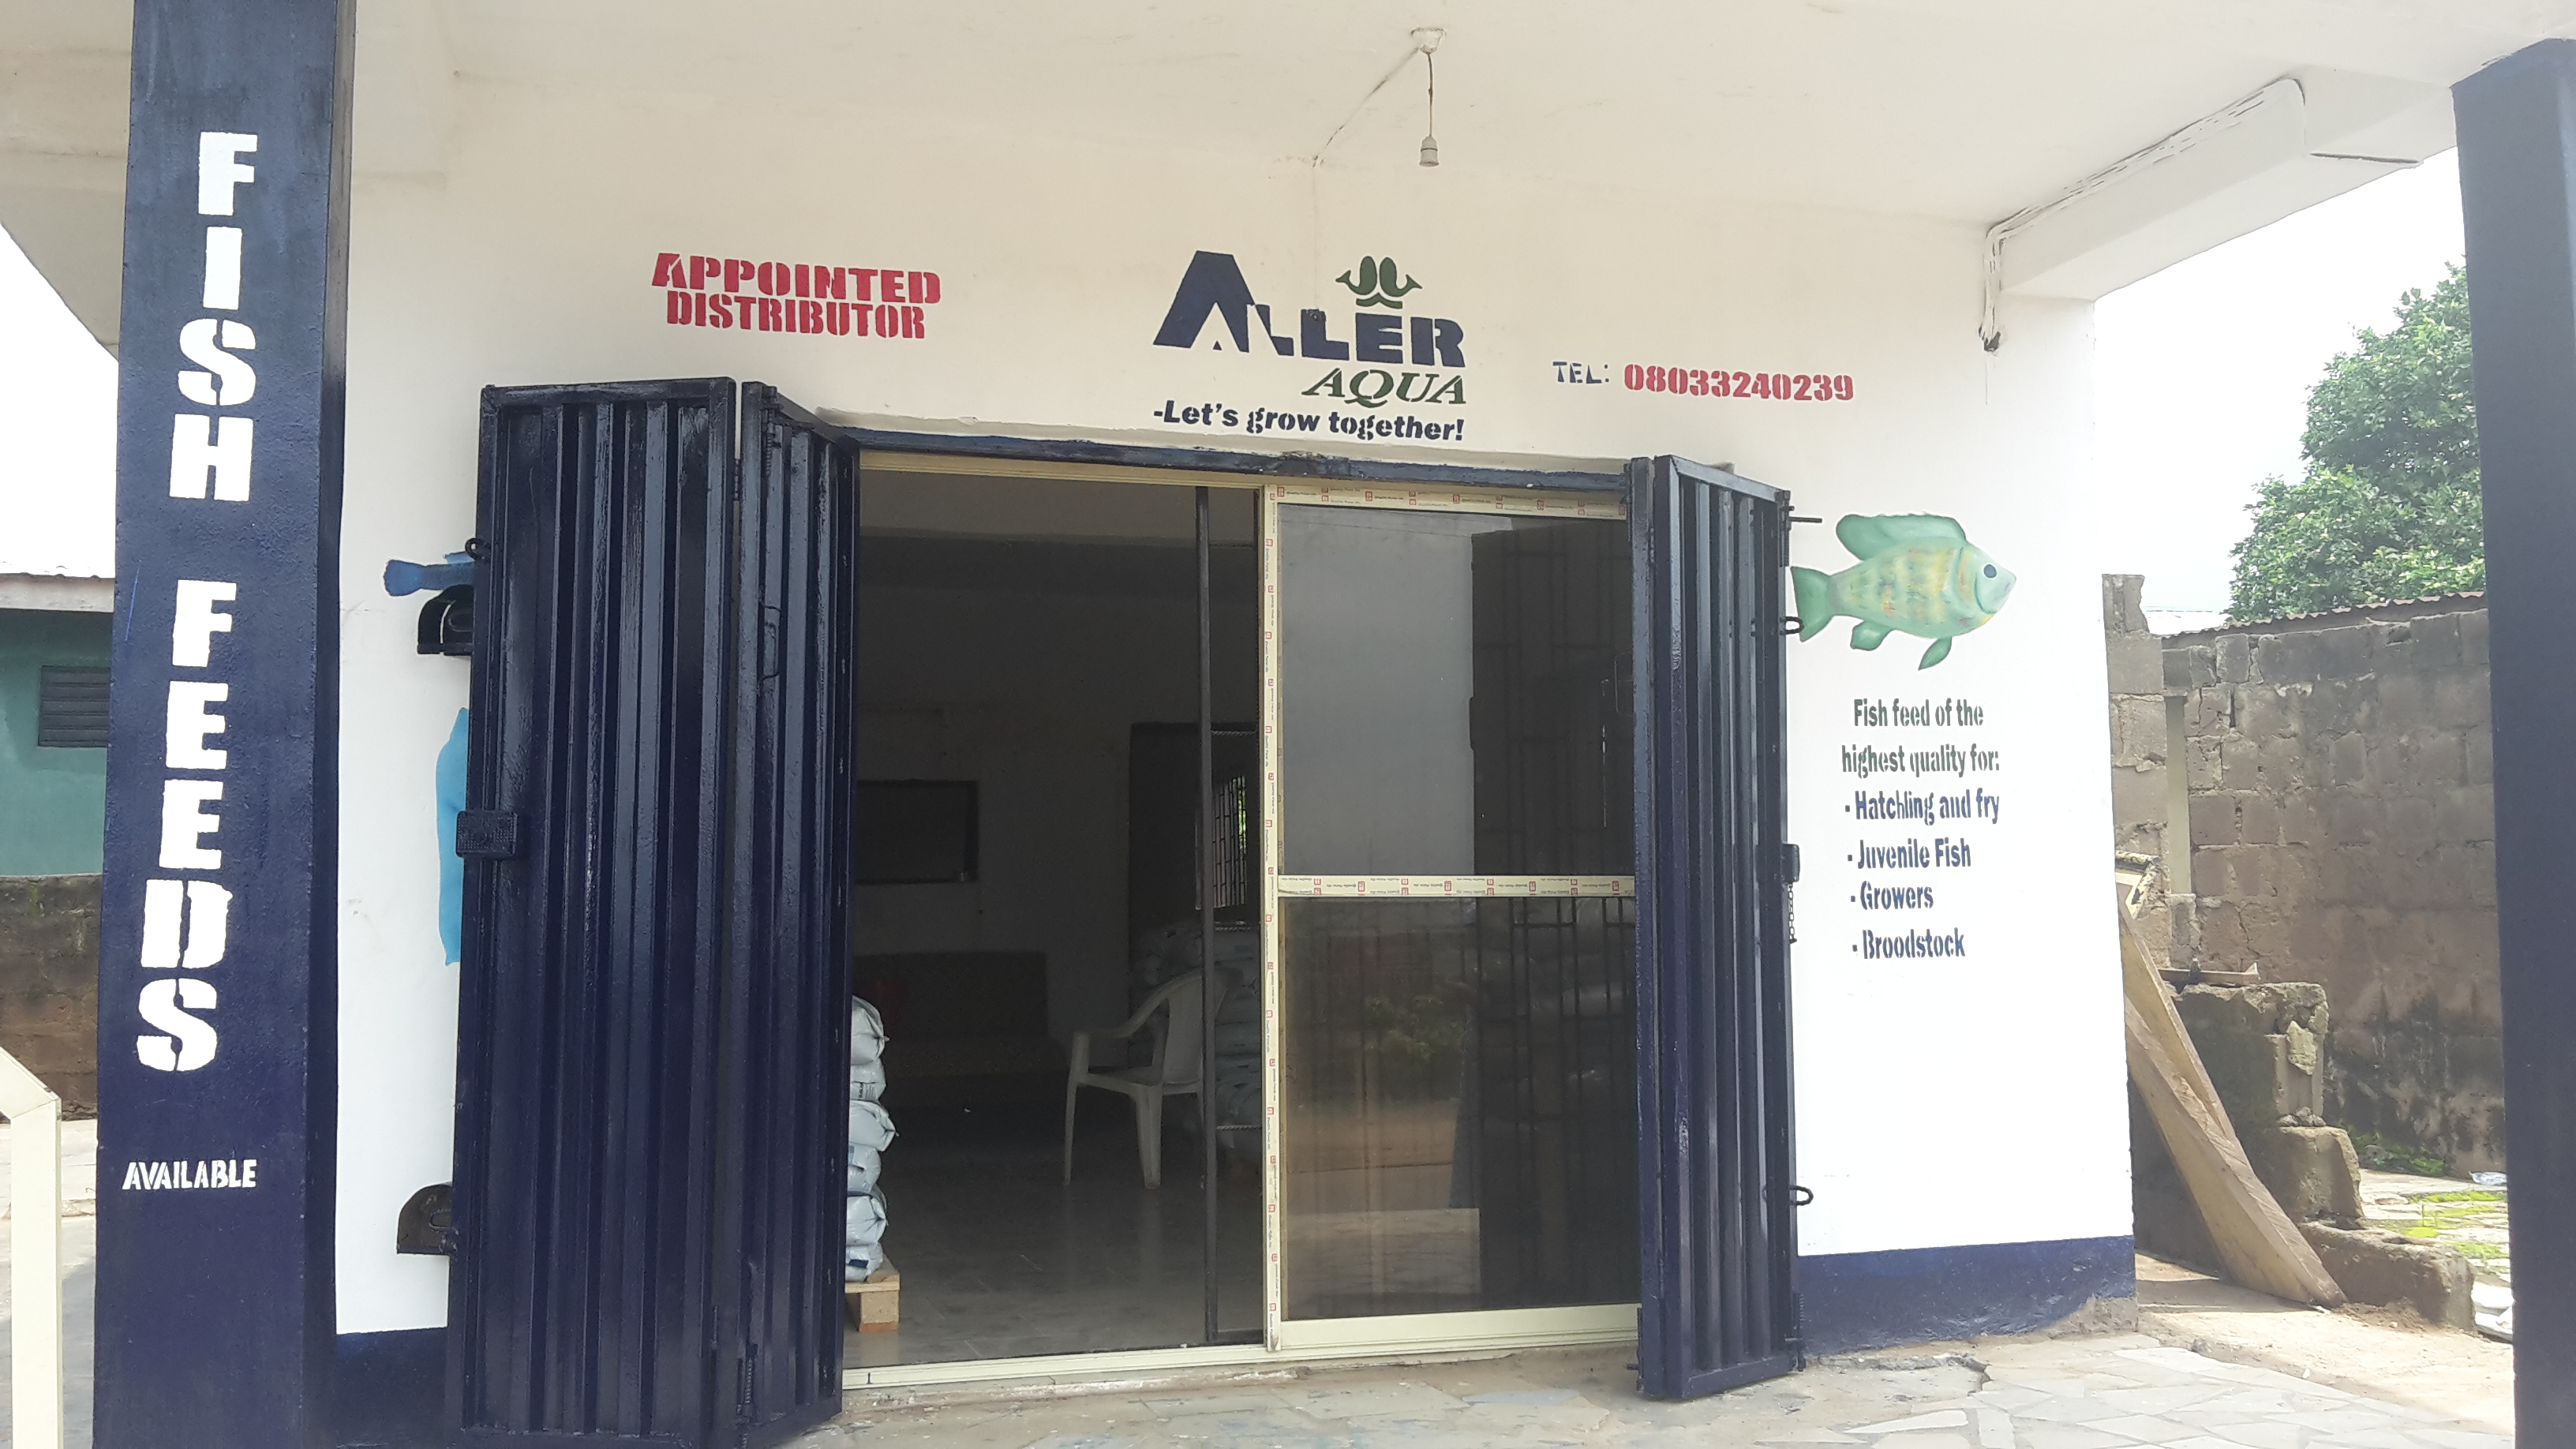 Aller Aqua Nigeria - Appointed distributor of fish feed for Aquaculture